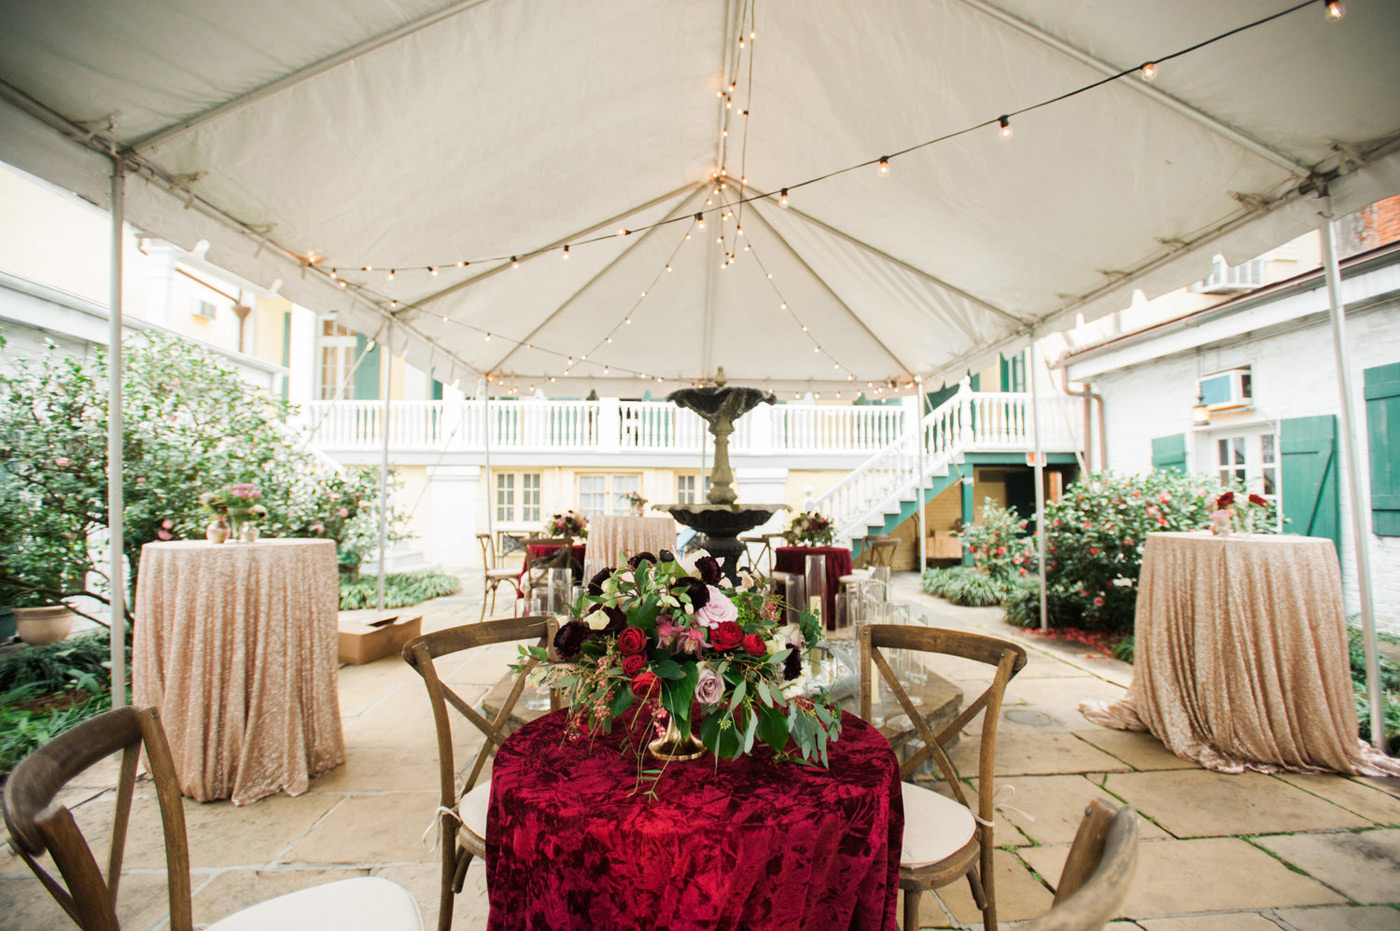 Wedding reception seating with red velvet table cloths, beautiful floral arrangements and string lights hanging from a white tent